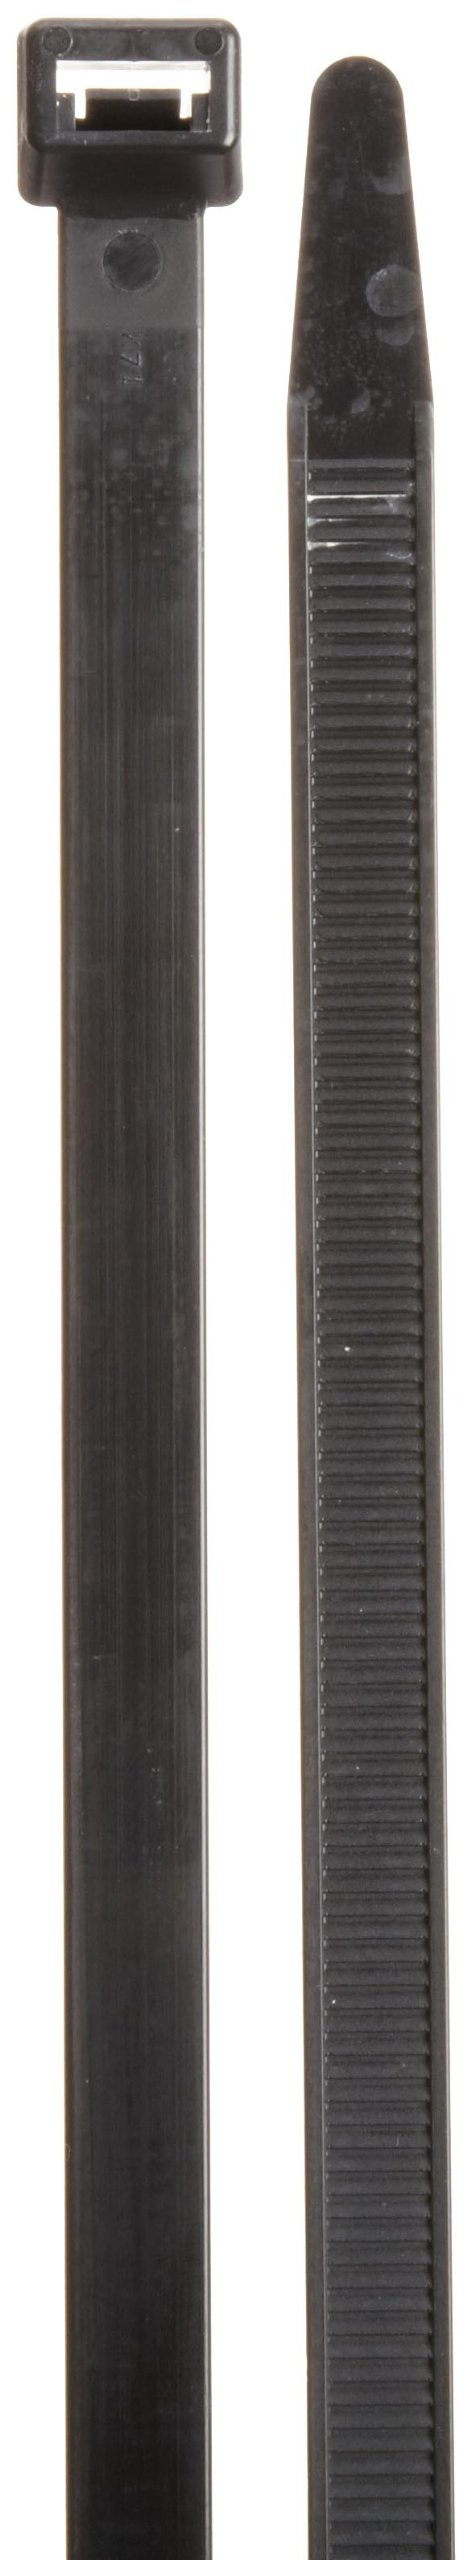 Morris Products Ultraviolet Black Nylon Cable Ties - 40 Inch Length -Heavy Duty, 250-Pound Tensile Strength - 12.48 Max Bundle Diameter - Cable Organization - UV Safe, UL Approved - Pack of 100